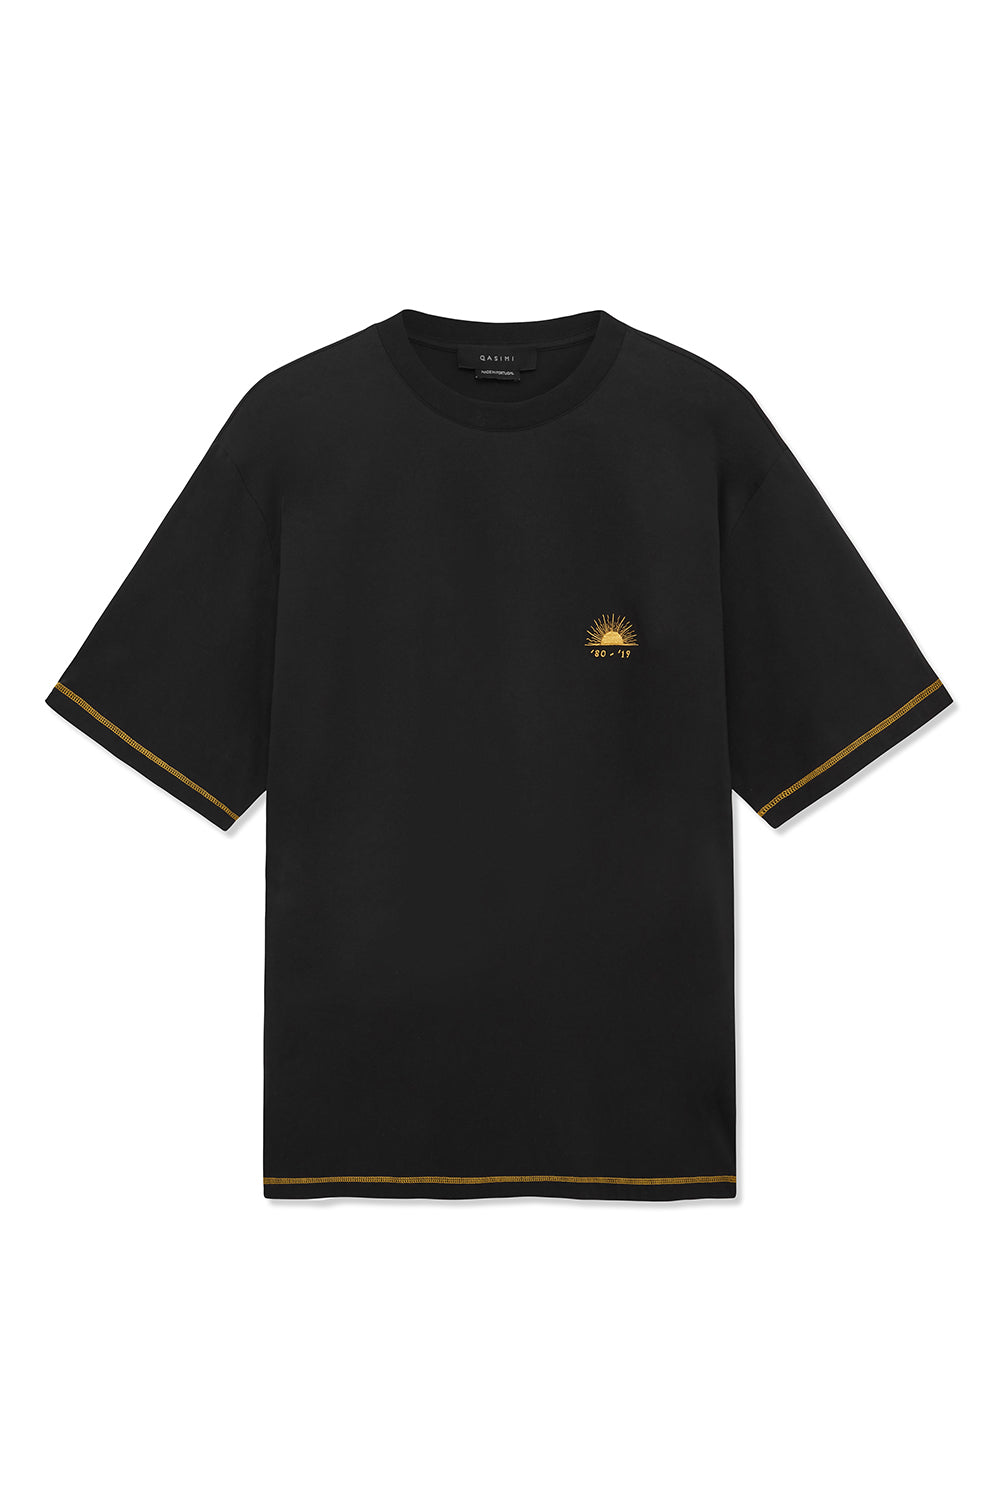 HAFEZ SINGLE JERSEY TSHIRT